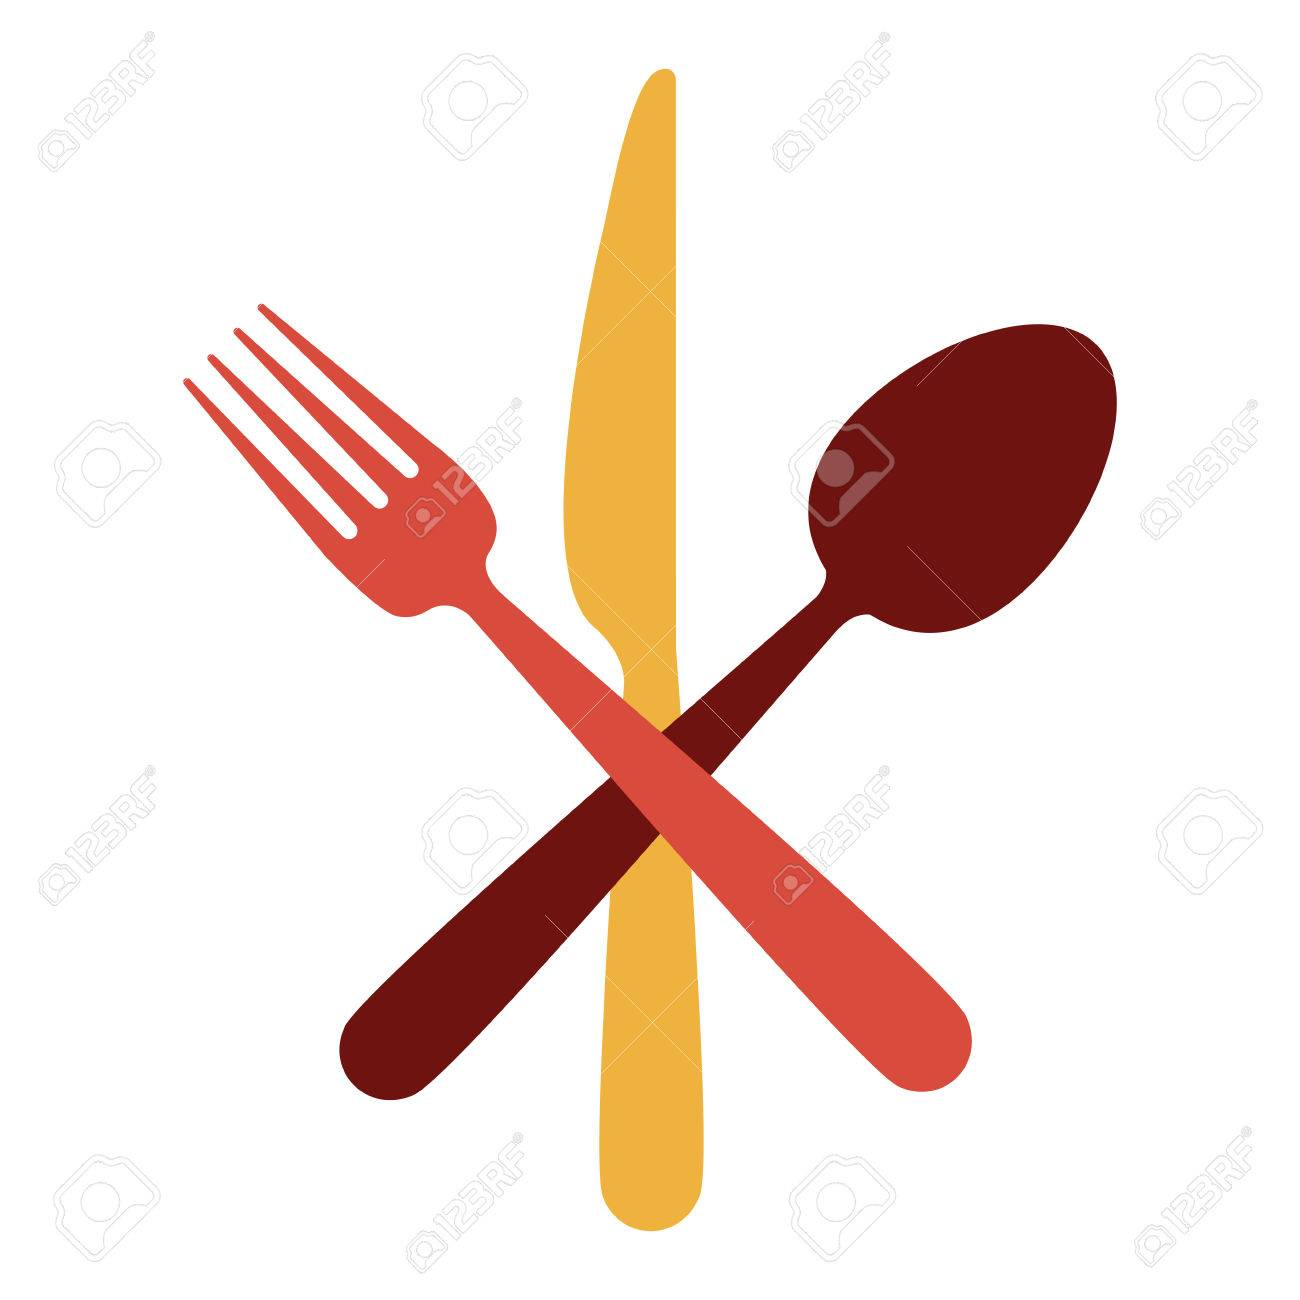 For restaurant pictures graphics illustrations clipart photos - Restaurant Cutlery Utensils Icon Vector Illustration Graphic Design Stock Vector 70888015